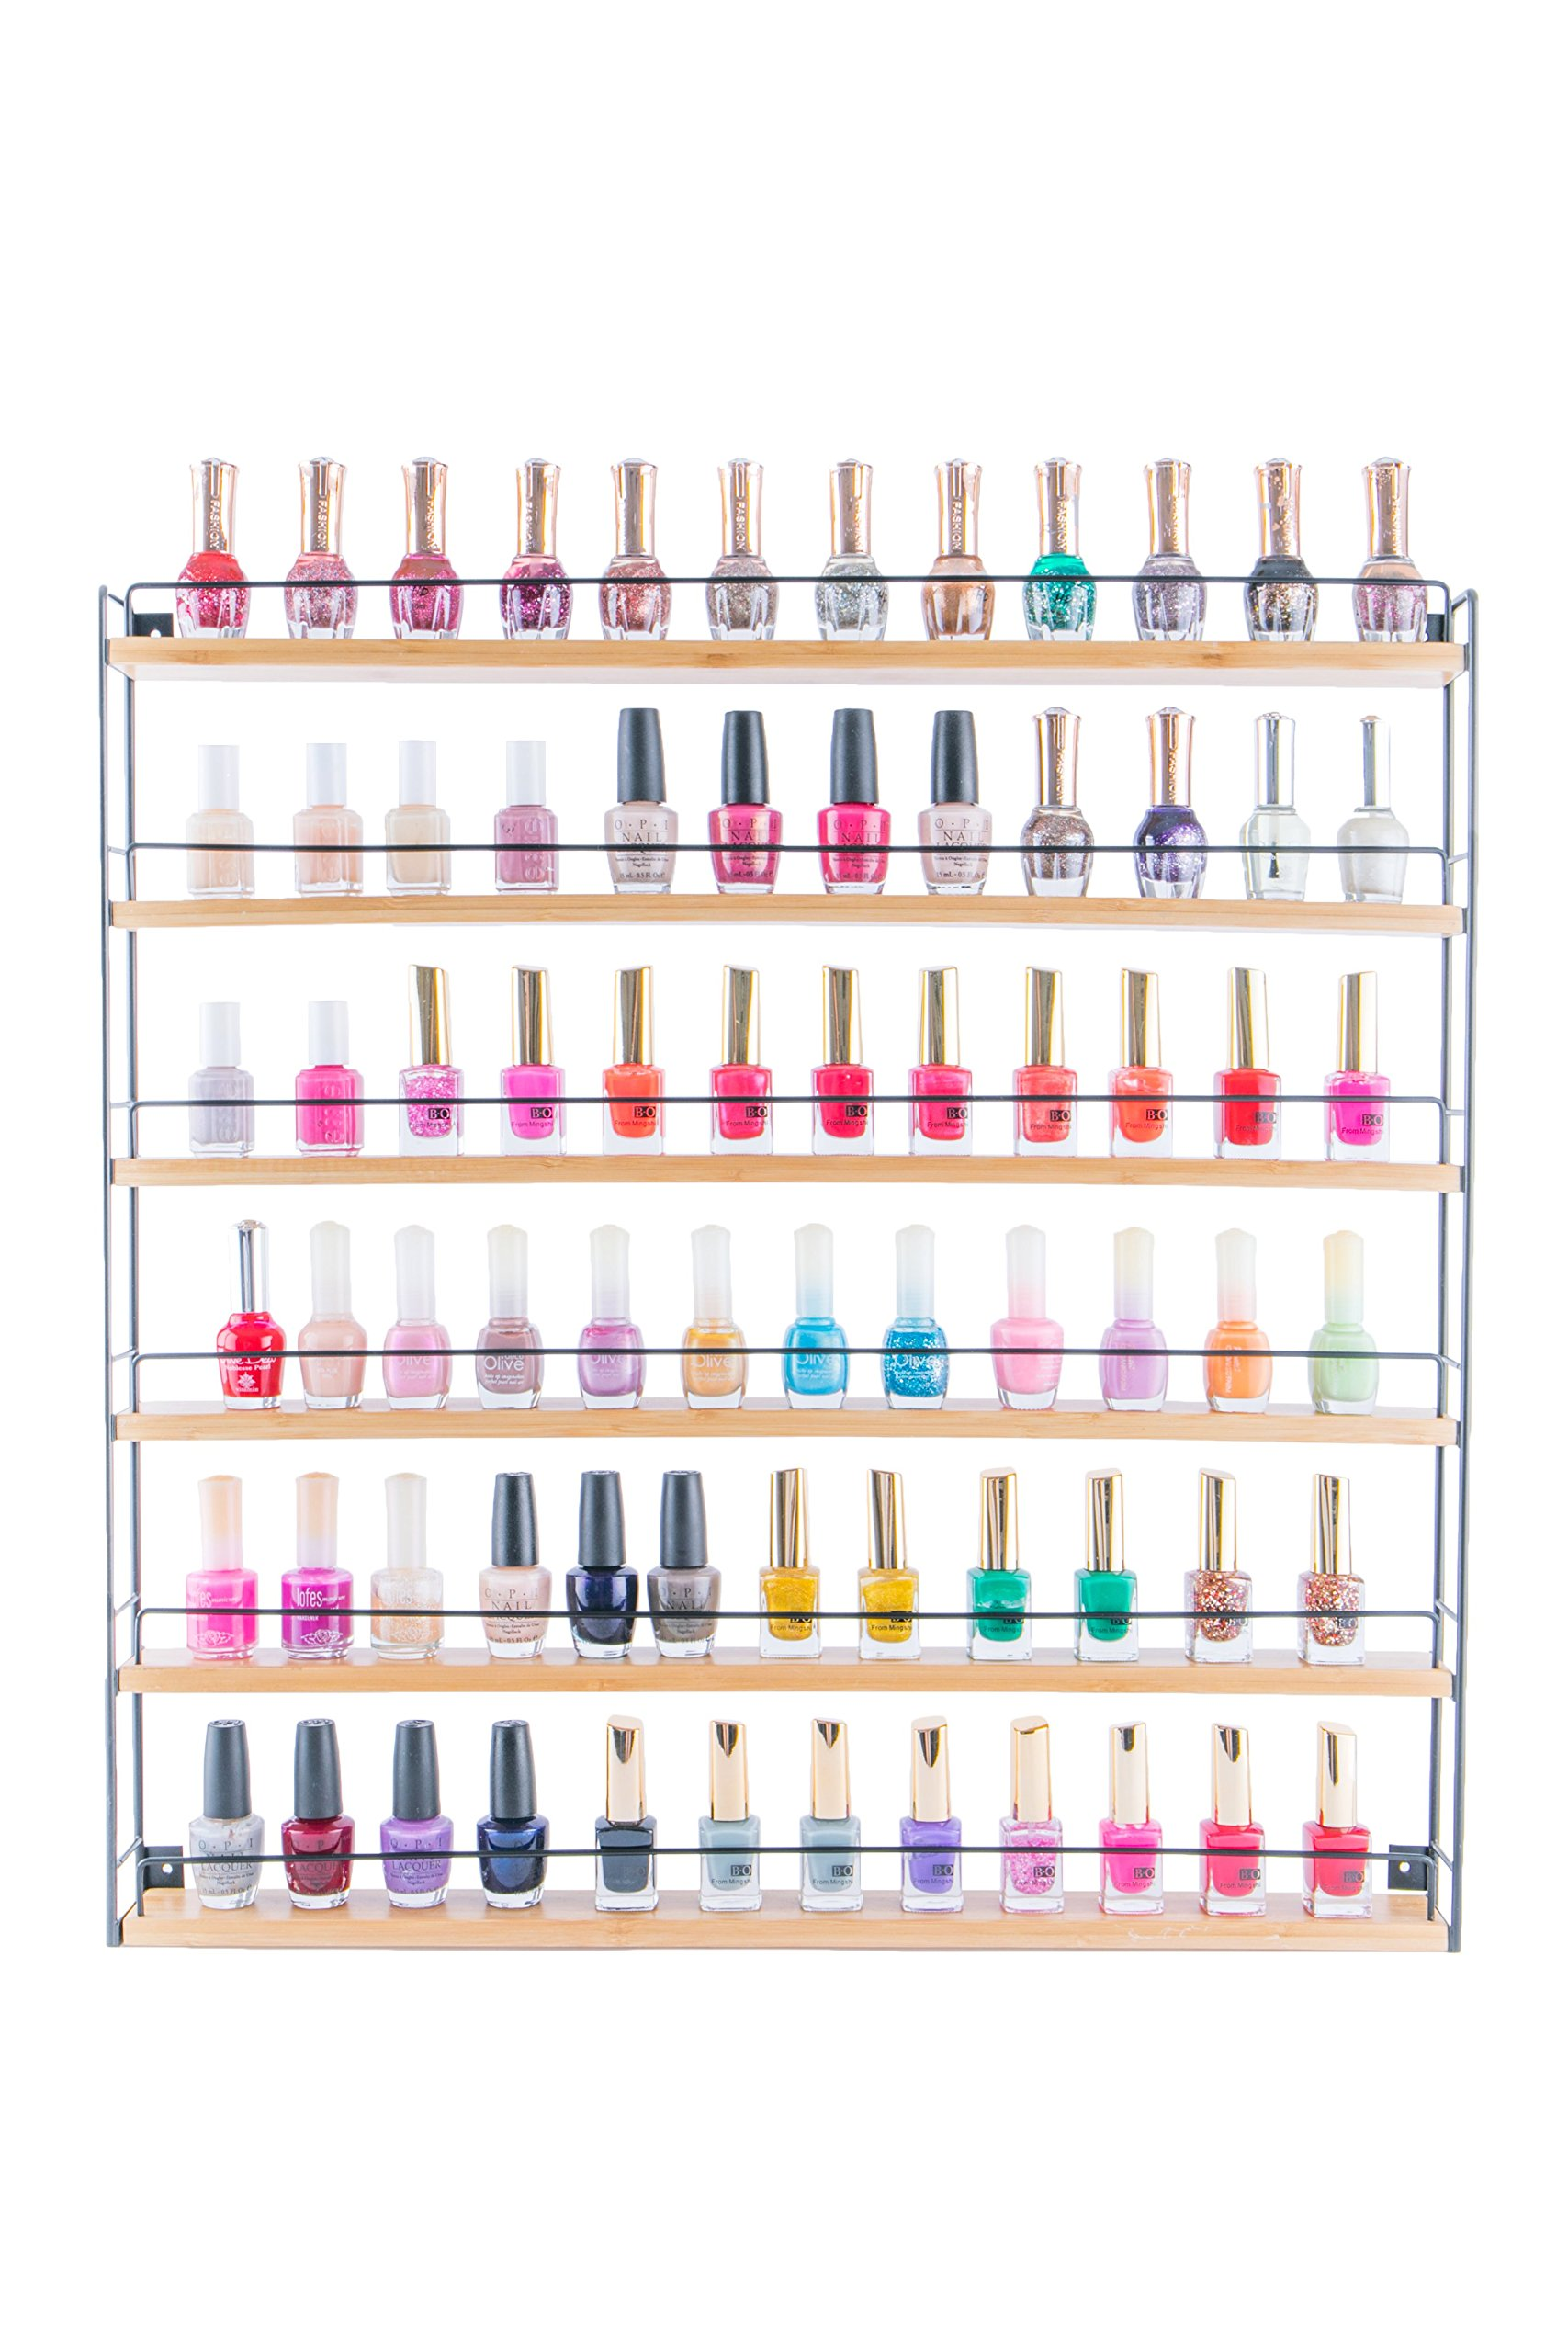 JackCubeDesign Bamboo 6-Tier Wall Mount Nail Polish Rack Organizer Display Shelf Holder Makeup Cosmetics Stand Hanger Storage Case Box with 6 Tiers - :MK278A